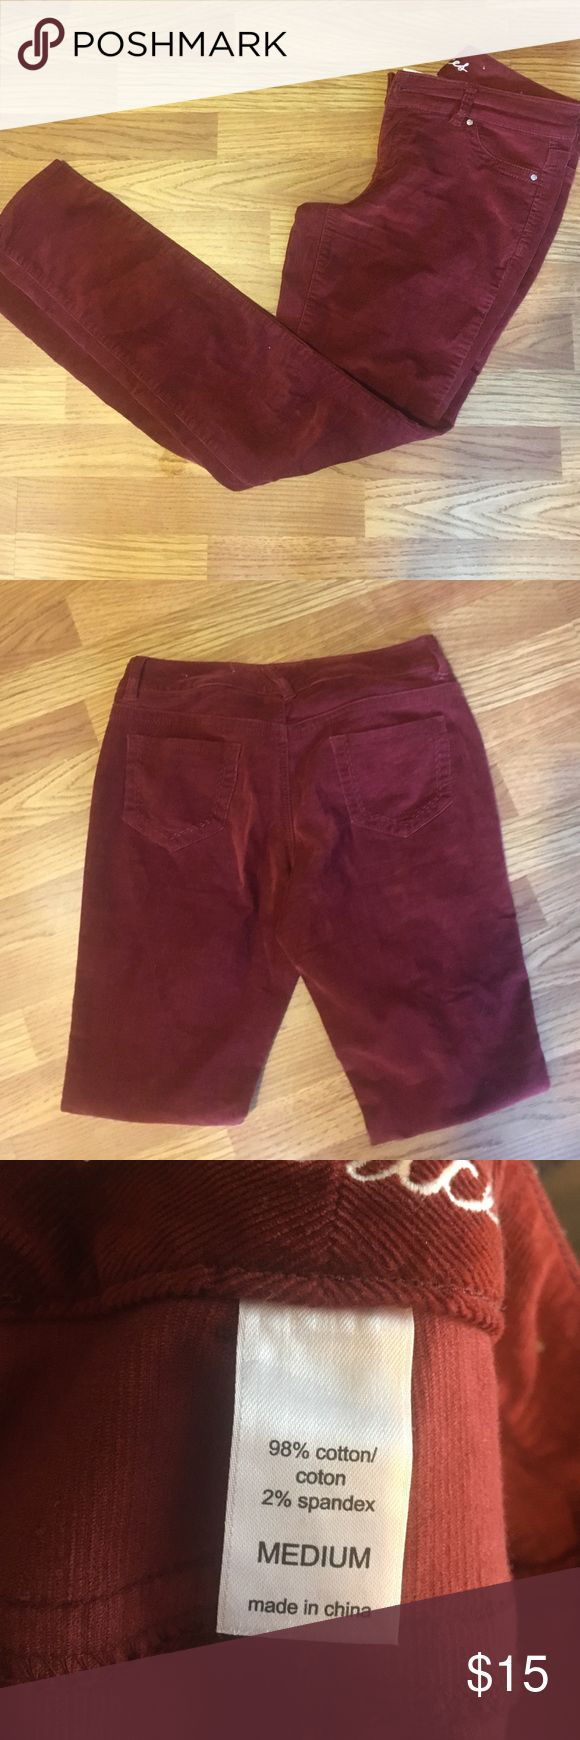 Corduroy leggings Rust colored leggings in great shape only worn a few times. Very stretchy and soft fabric. Maurices Pants Leggings